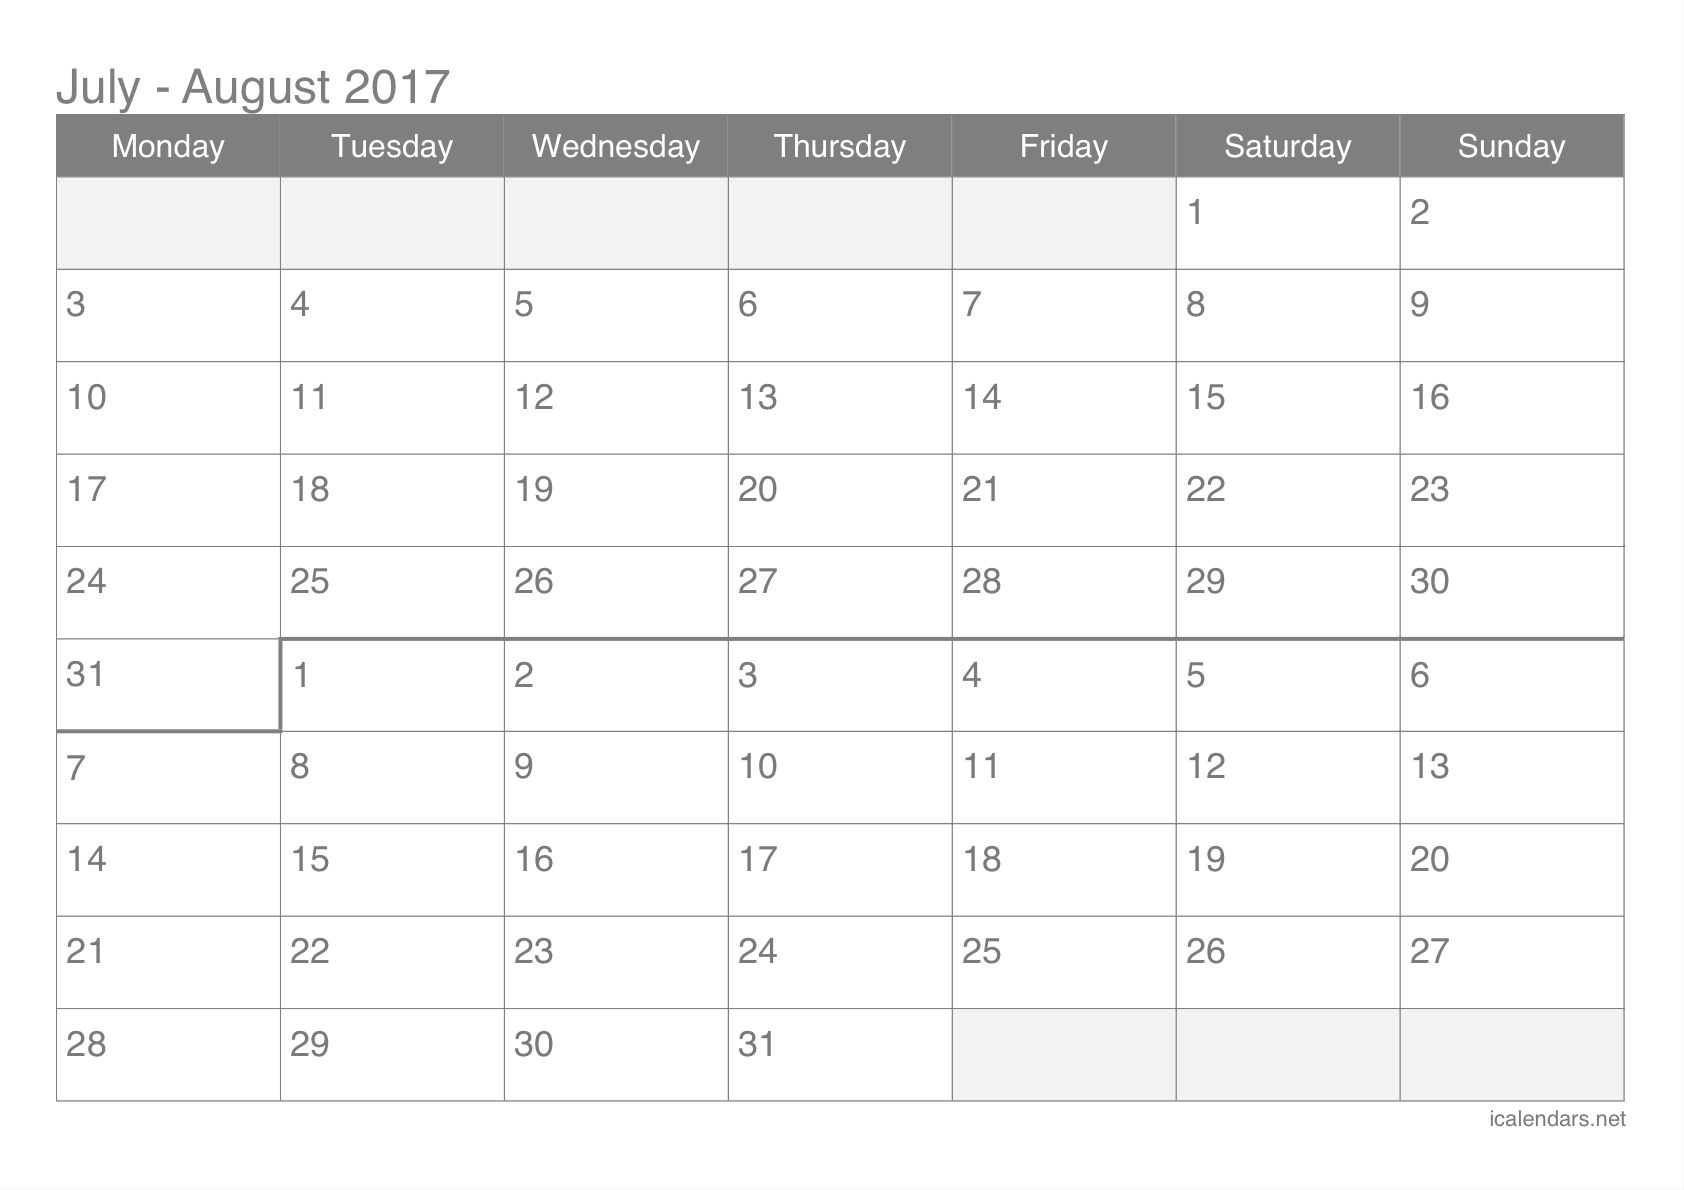 July And August 2017 Printable Calendar - Icalendars